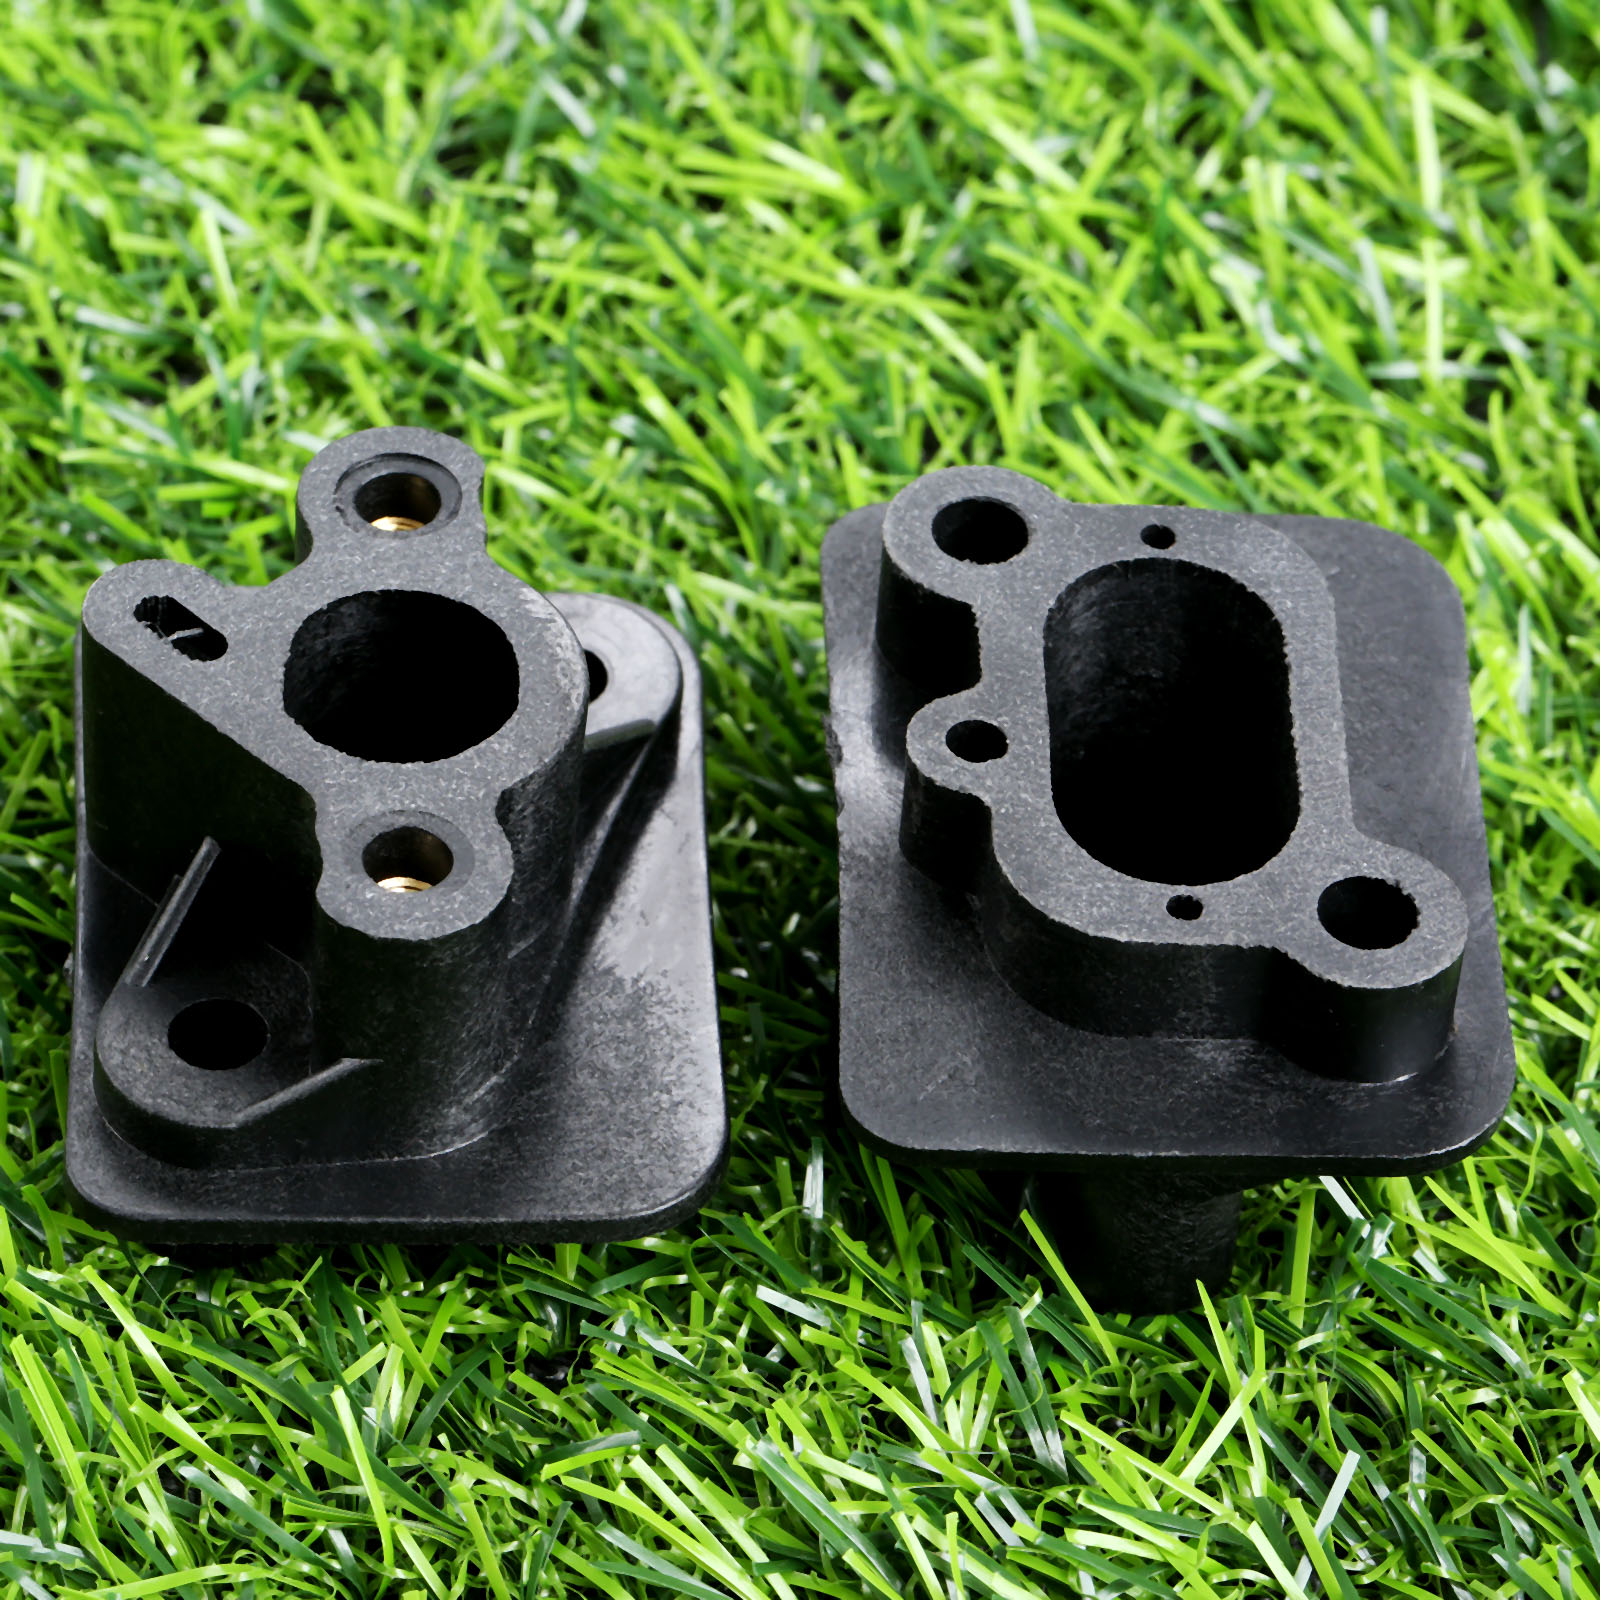 DRELD 2Pcs Trimmer Parts Tools 40-5 43CC 52CC Brush Cutter Intake Manifold Carburetor Base Connector Admitting Pipe Carb Adaptor dreld carburetor carb for 1e40f 5 tb43 brush cutter chainsaw spare parts for grass trimmers and cutters garden tools parts